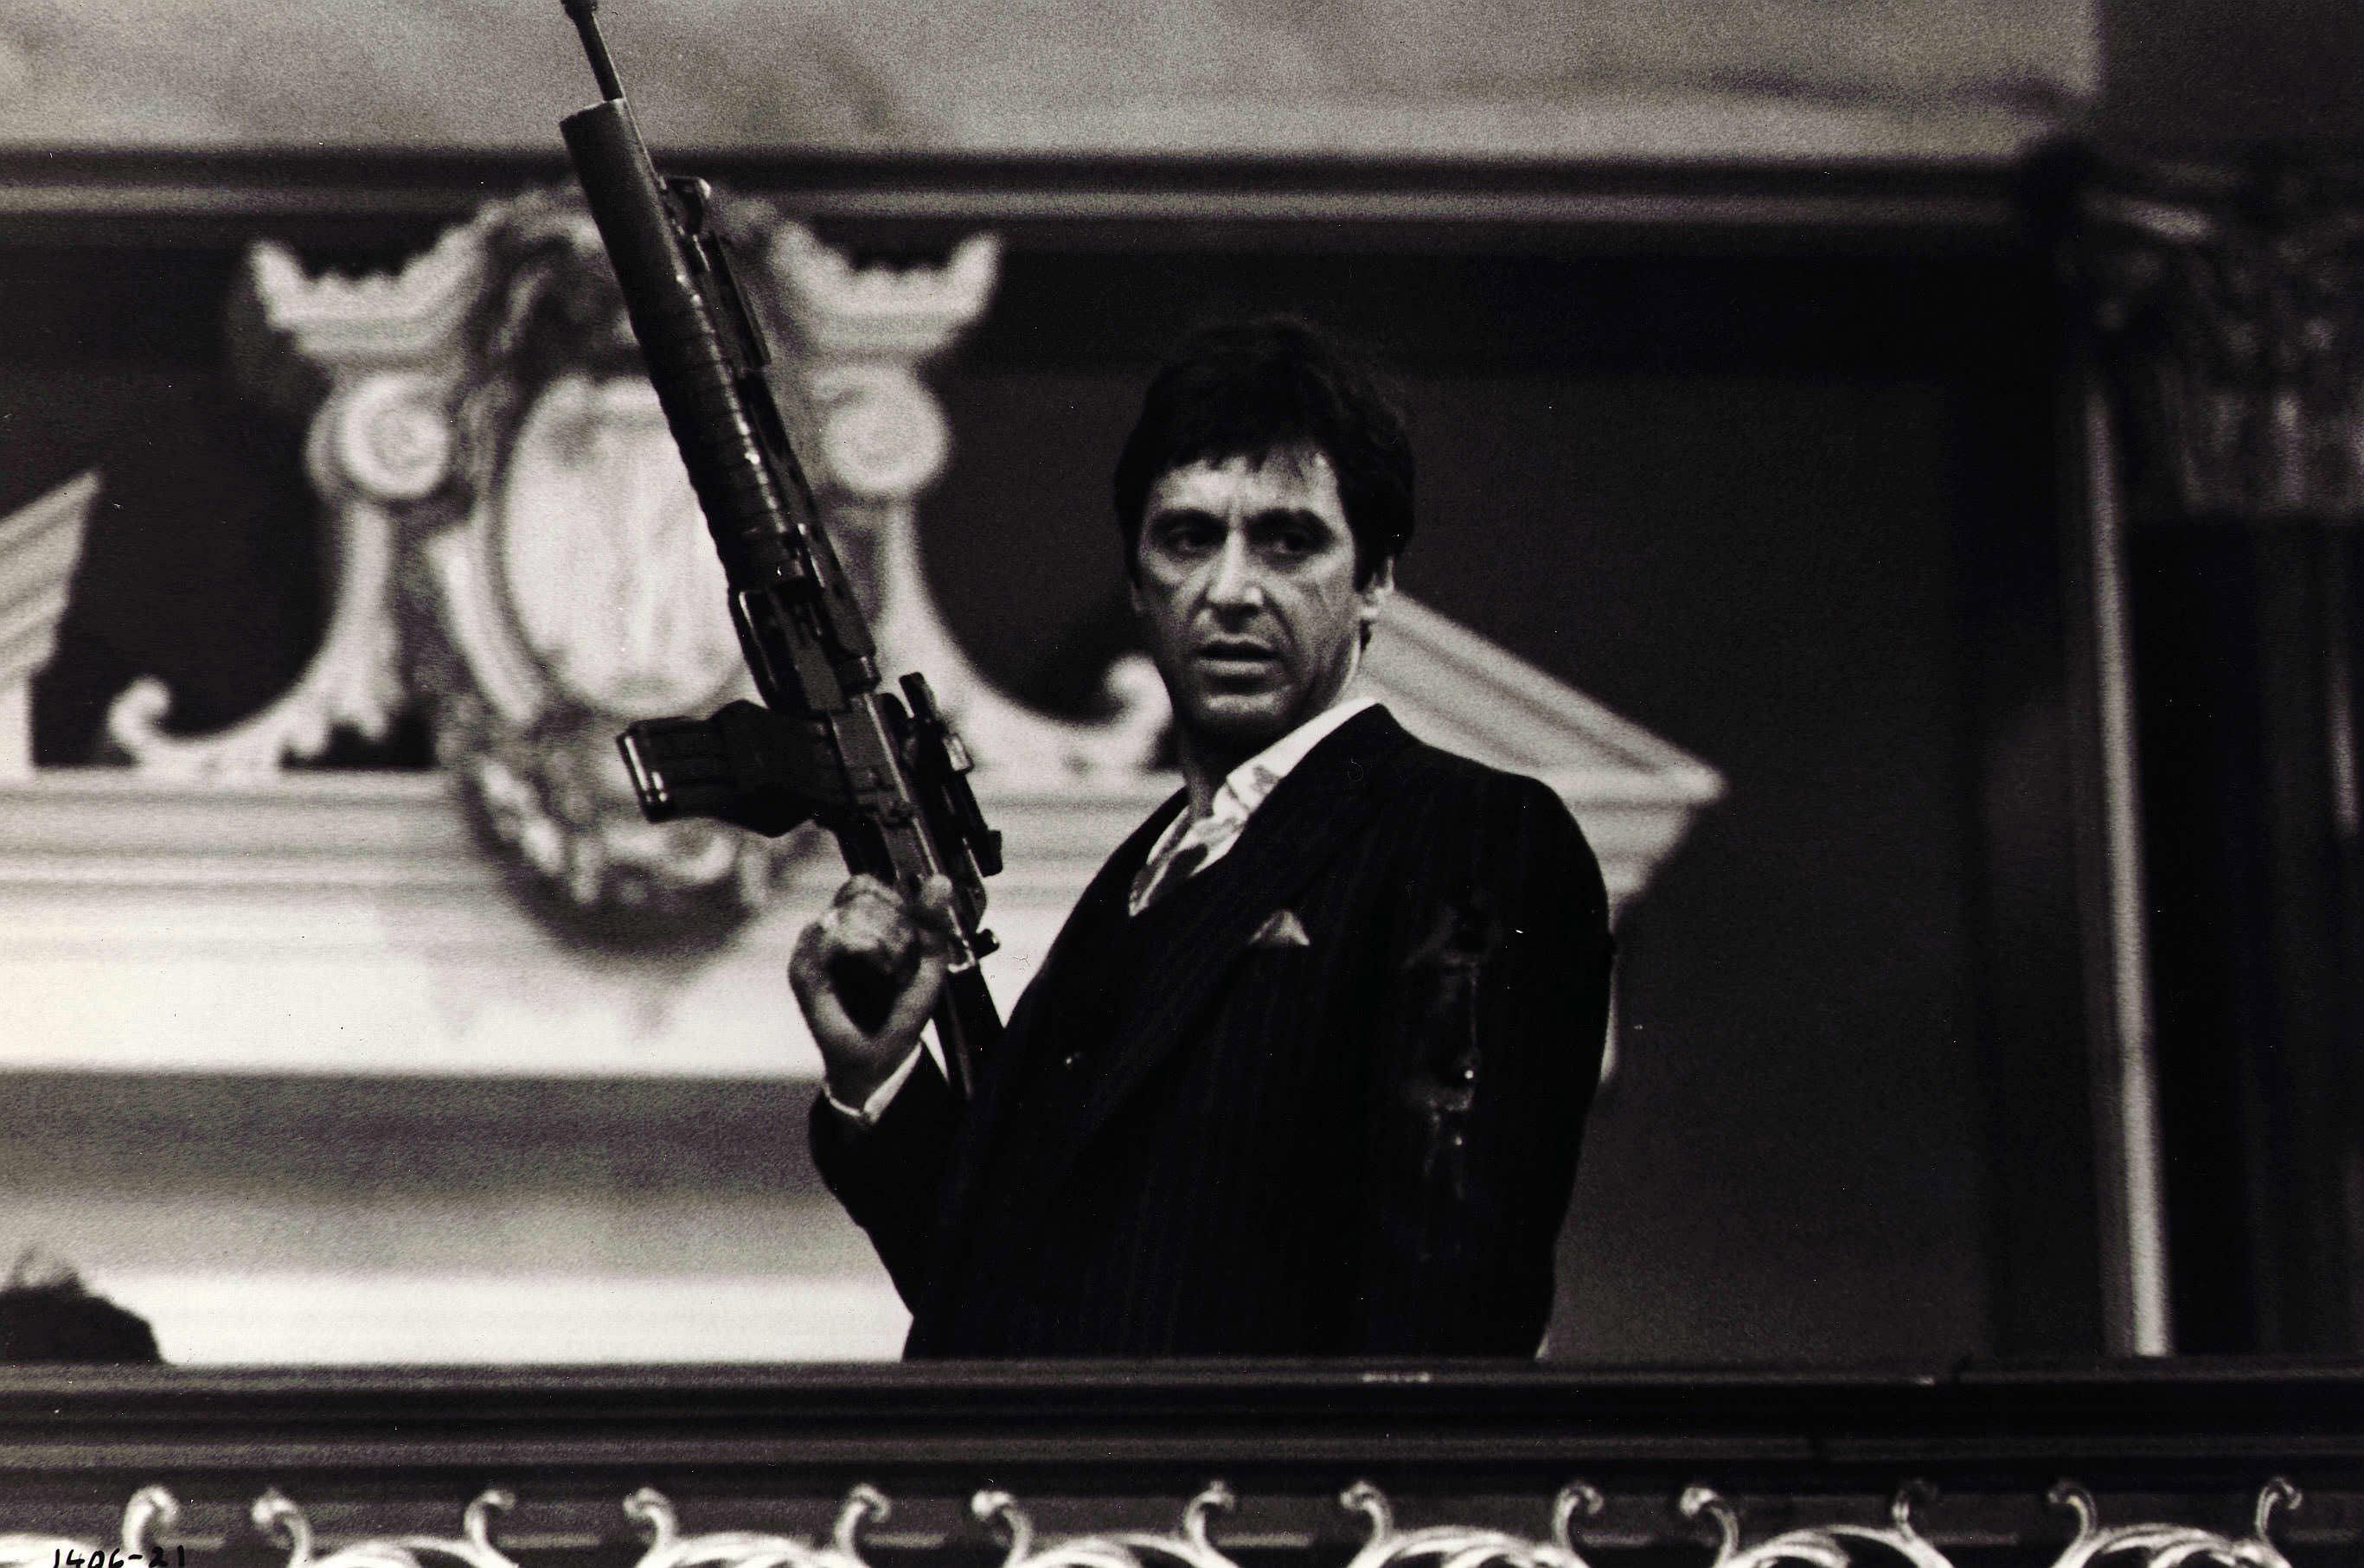 Best scarface wallpaper iphone background scarface - Scarface wallpaper iphone ...